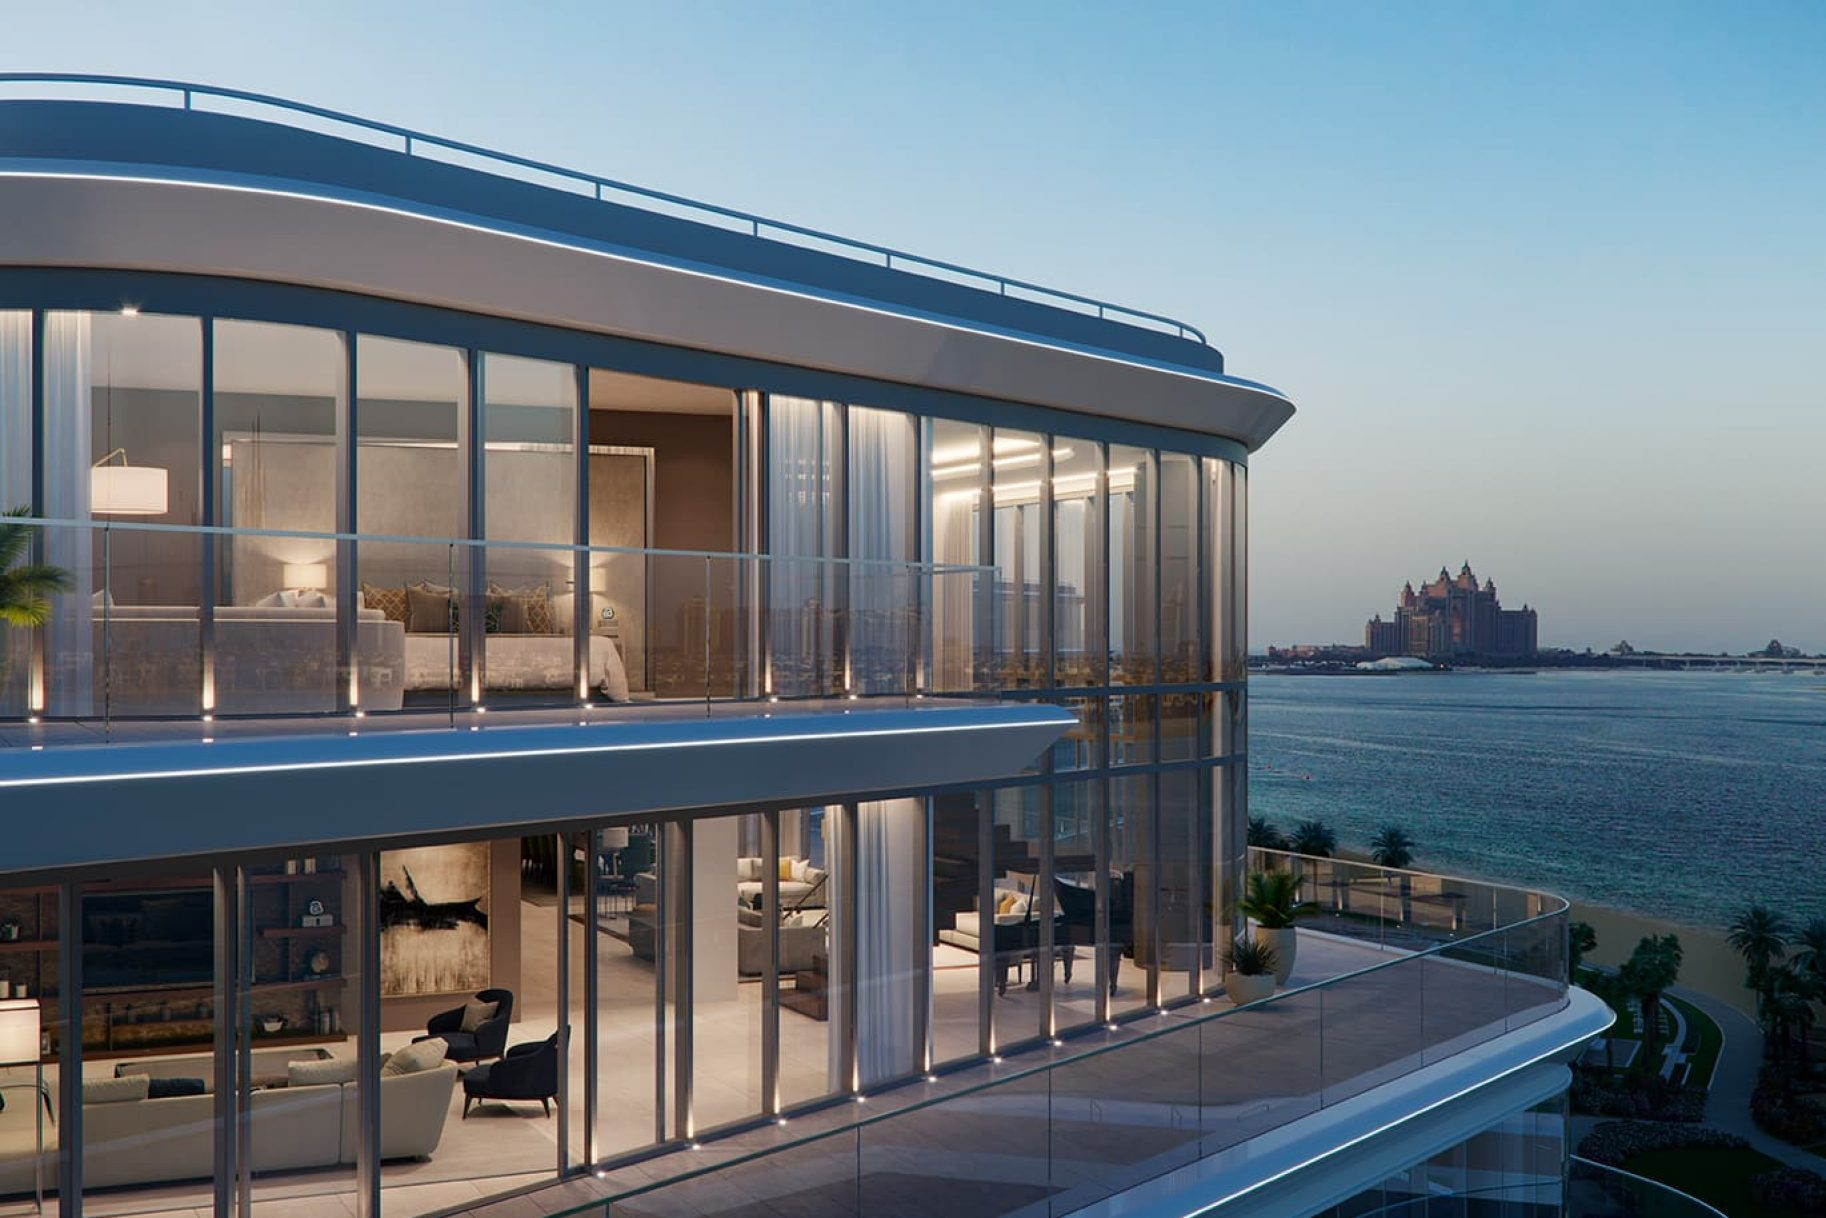 A balcony of a luxury waterfront apartment with views to Dubai